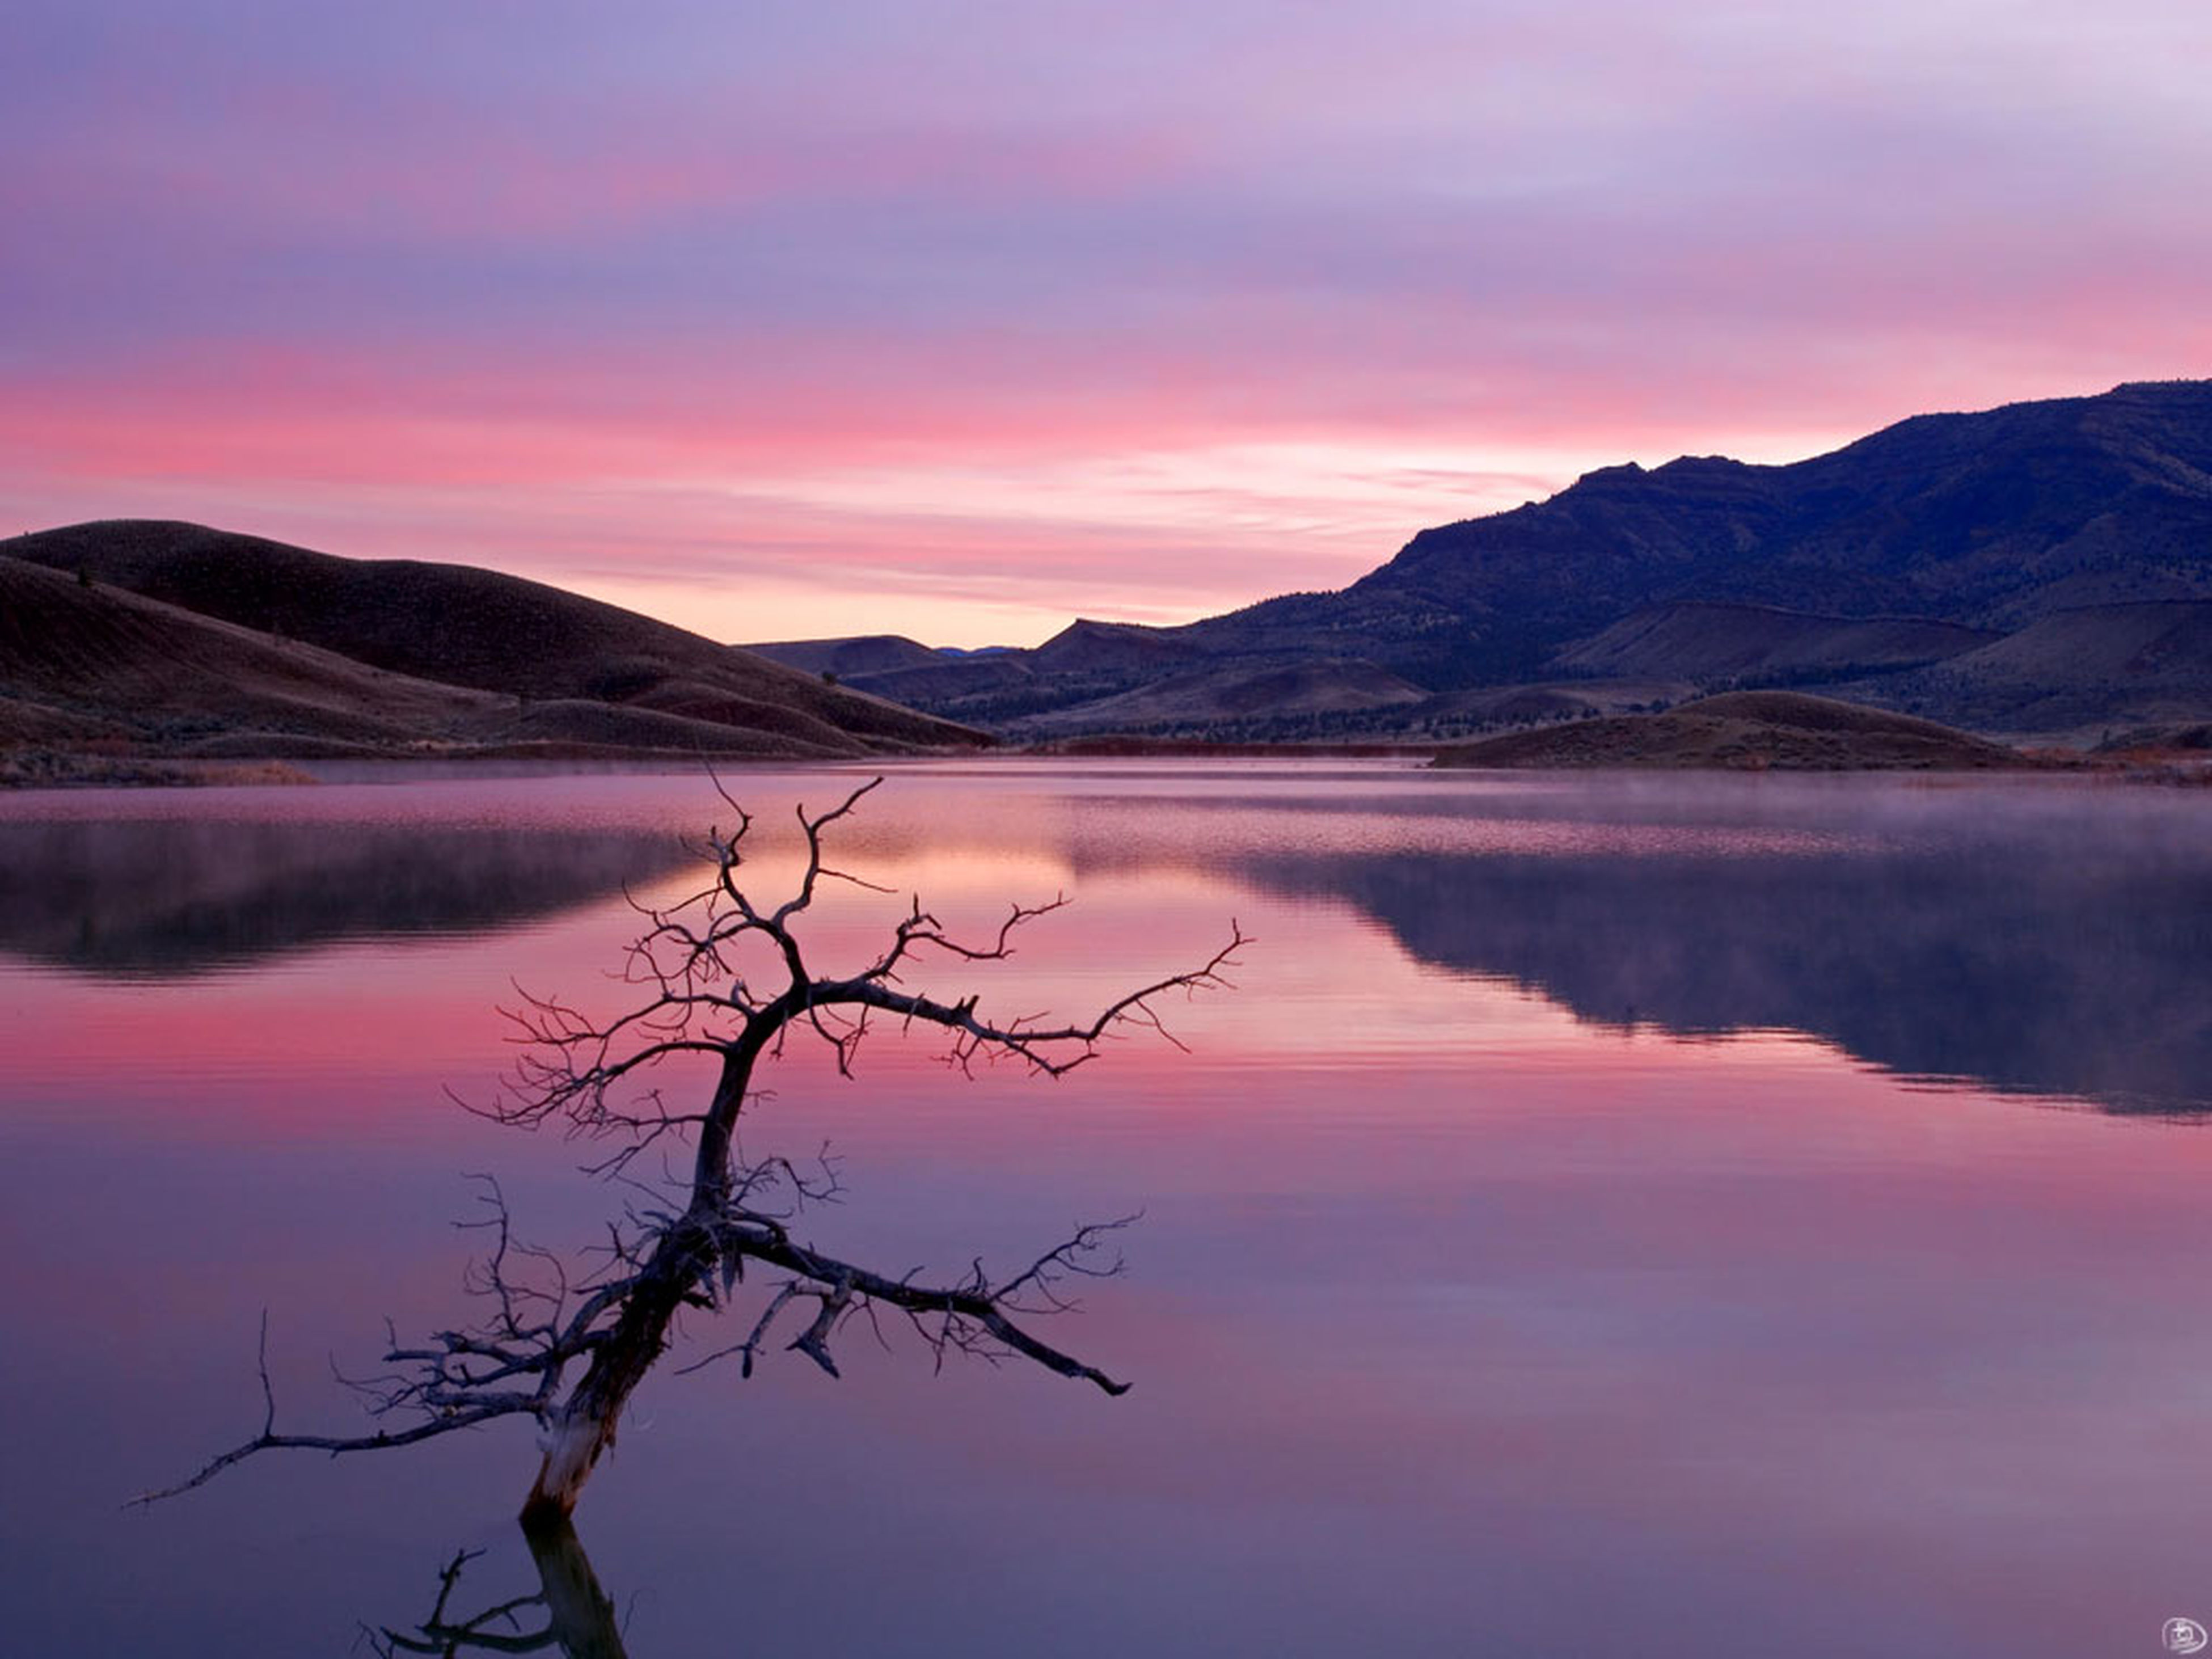 sunset, reflection, scenics, landscape, mountain, lake, nature, beauty in nature, pink color, tranquil scene, outdoors, sky, water, no people, tree, fog, mountain range, rural scene, dawn, day